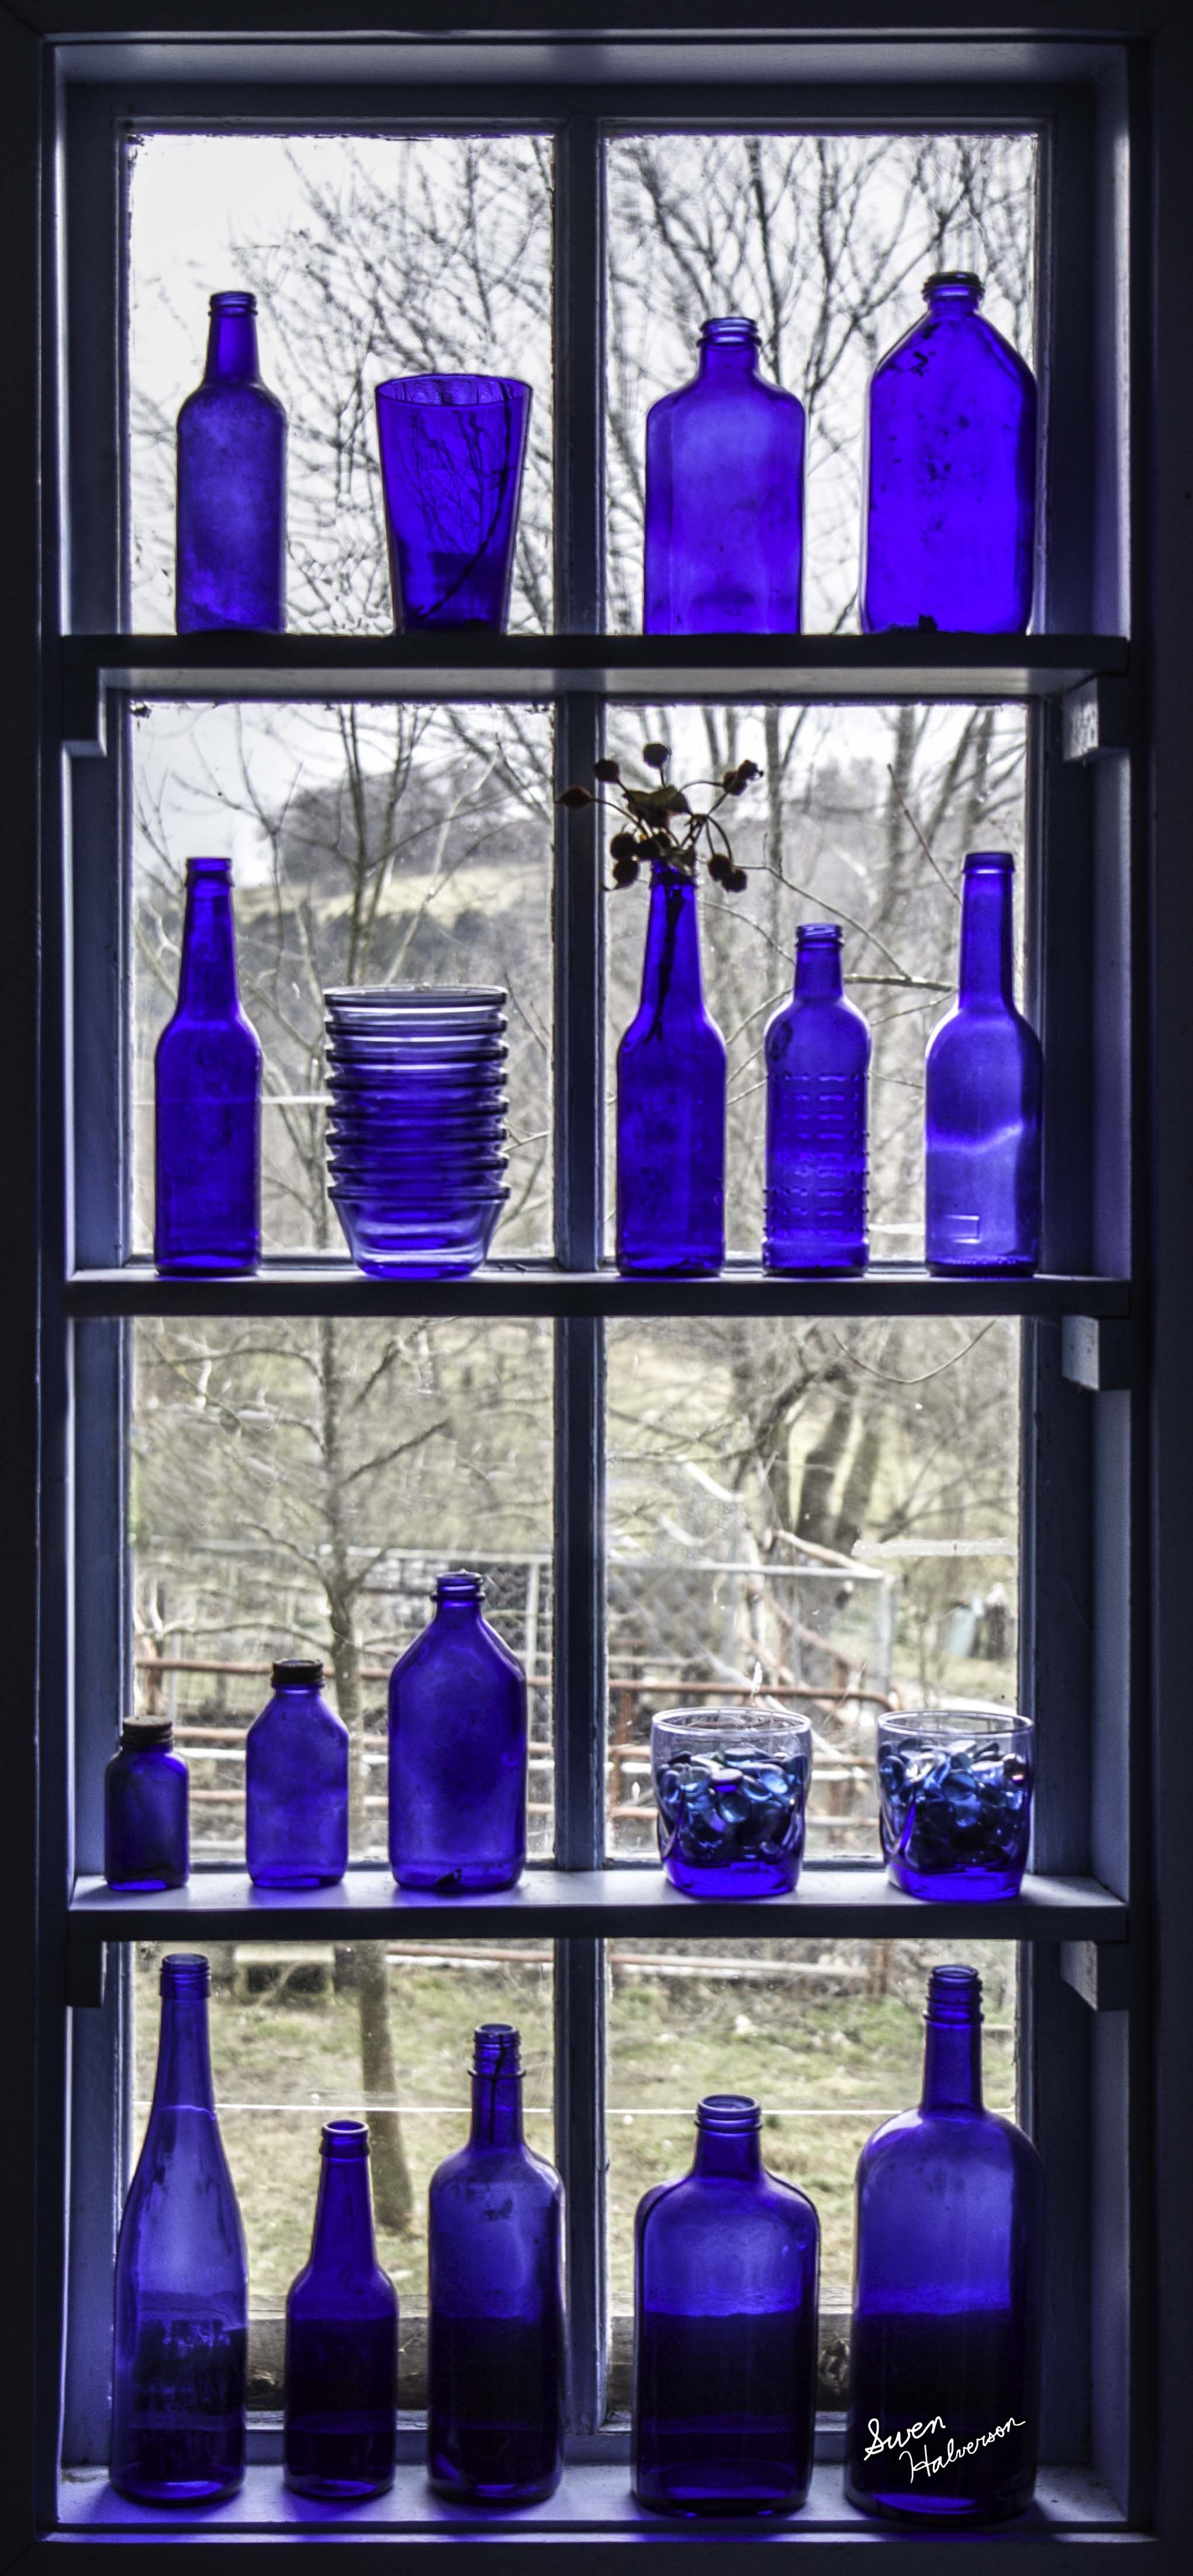 Cape cod charm happy as a clam serafini amelia theme melodic cape cod charm happy as a clam serafini amelia theme melodic title blue glass bottlesblue bottlecobalt floridaeventfo Image collections